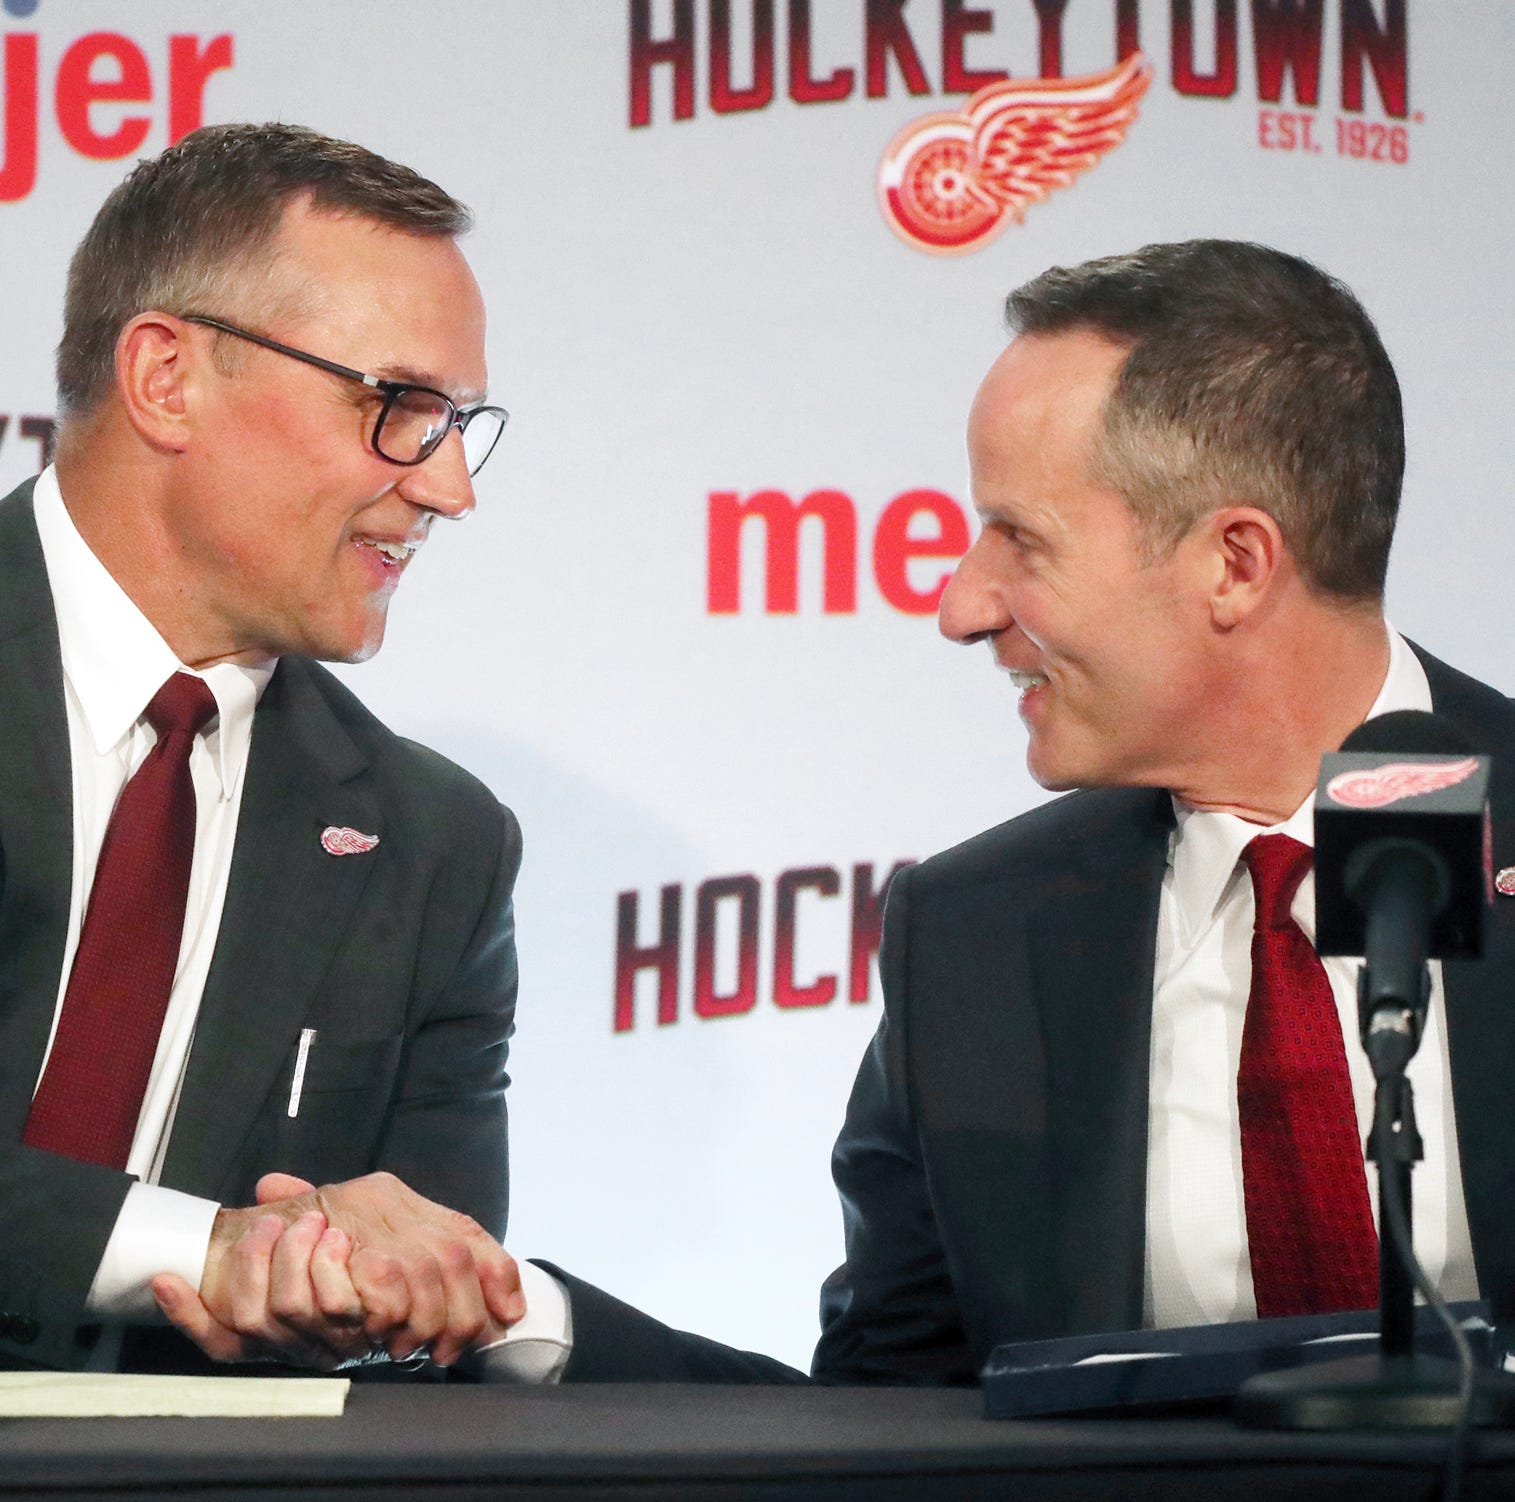 Steve Yzerman named Detroit Red Wings' GM: His full opening statement